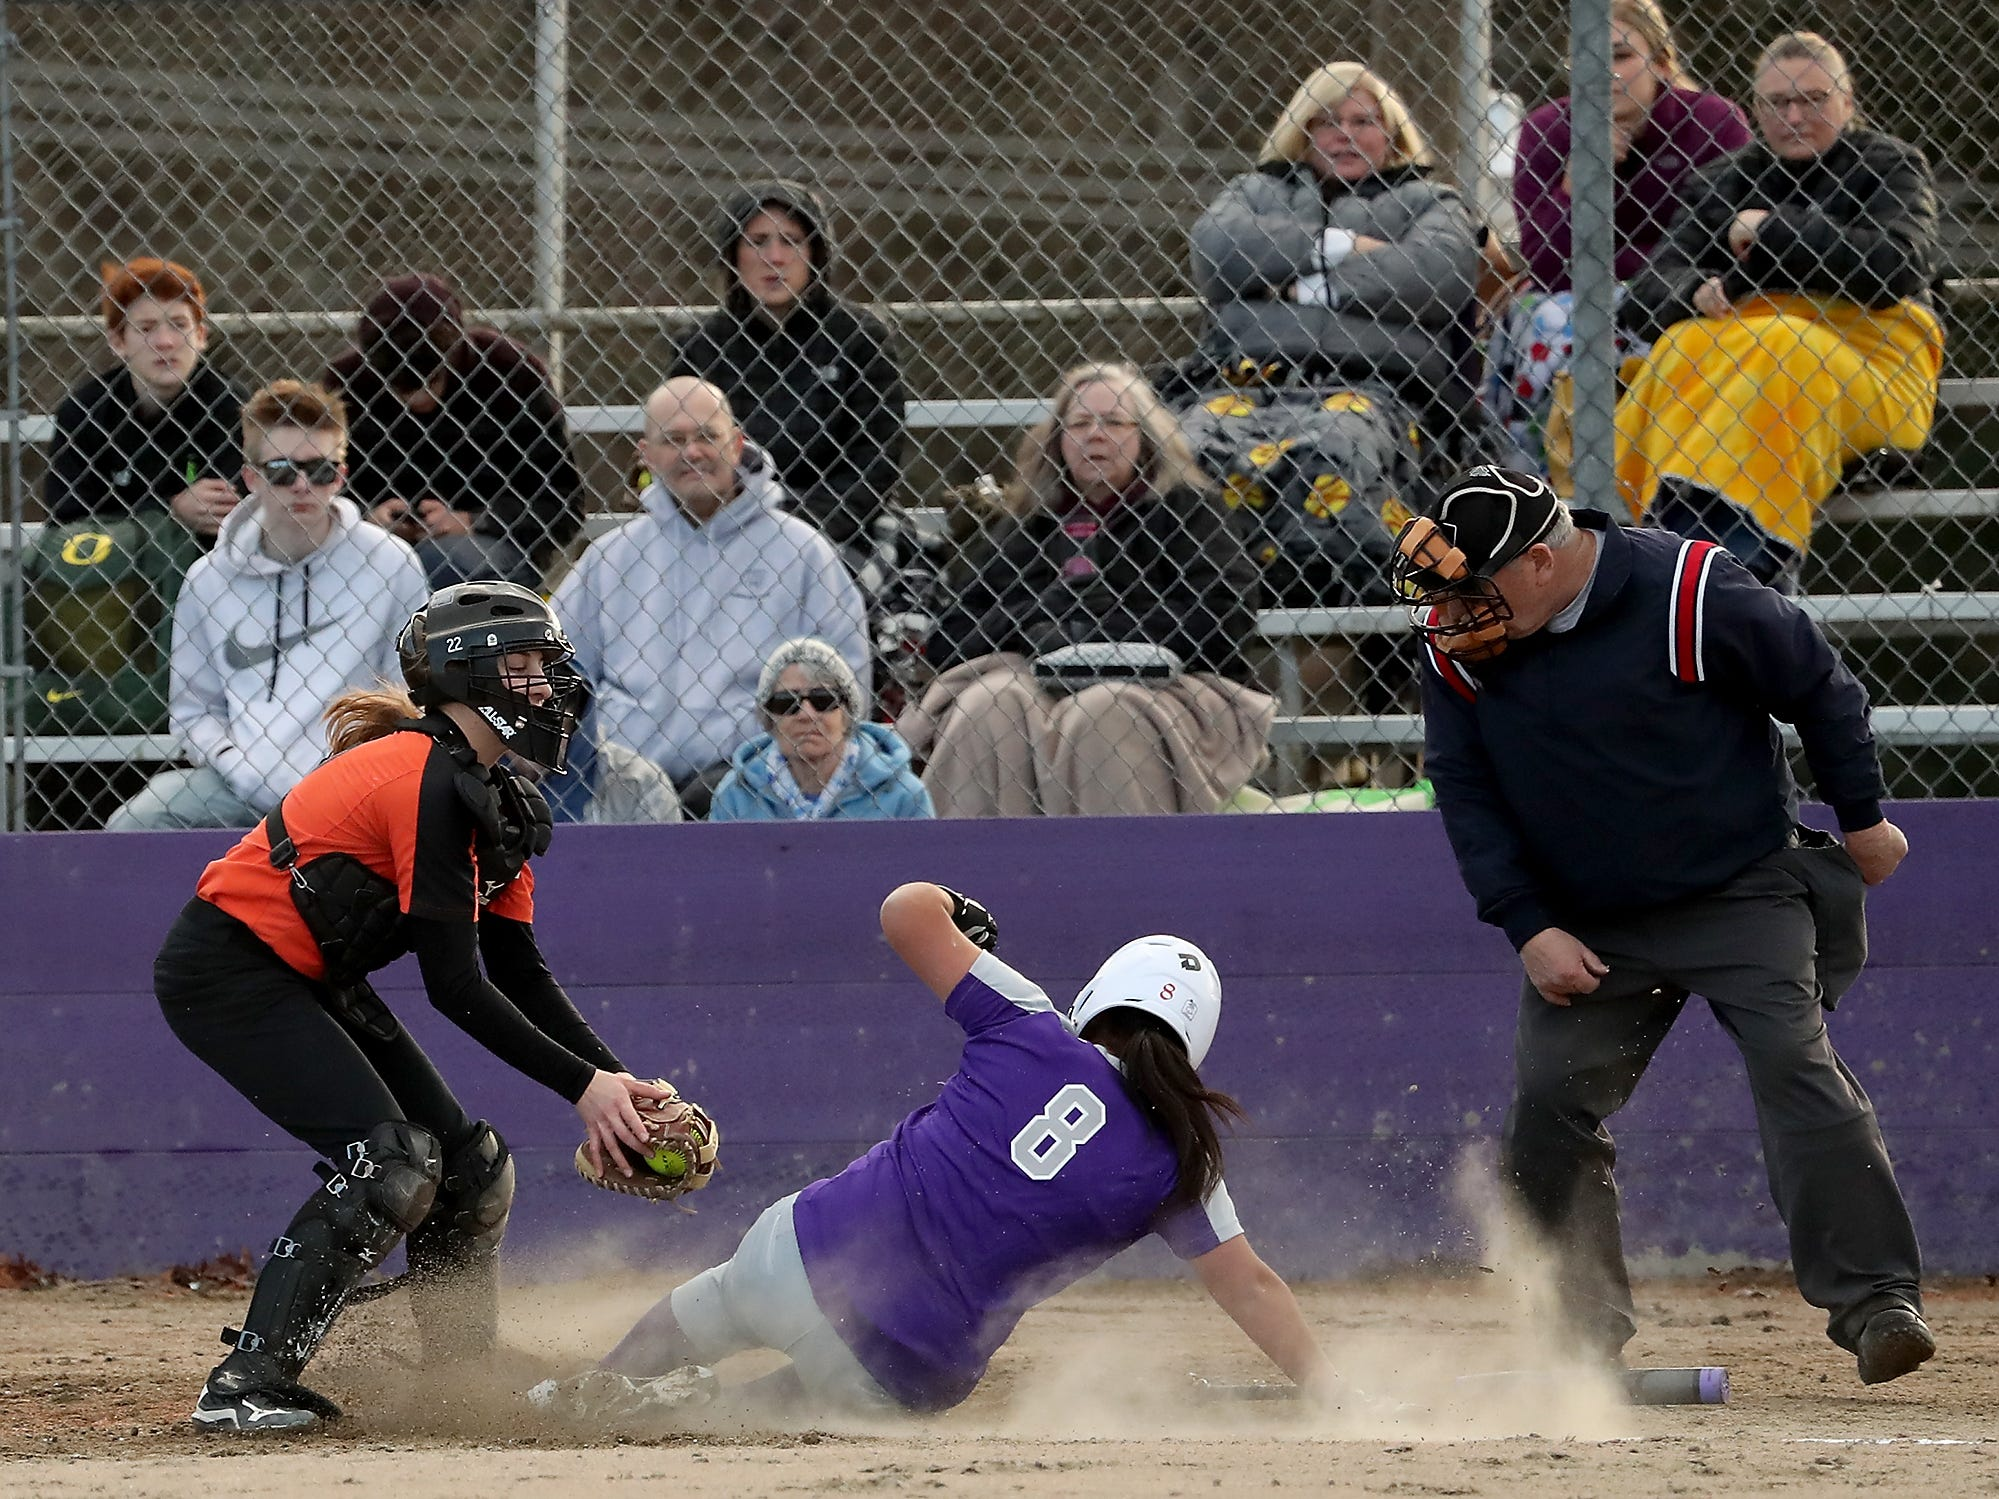 North Kitsap's Alicia Goetz is out on a slide into home against Central Kitsap in Poulsbo on Wednesday, March 13, 2019.